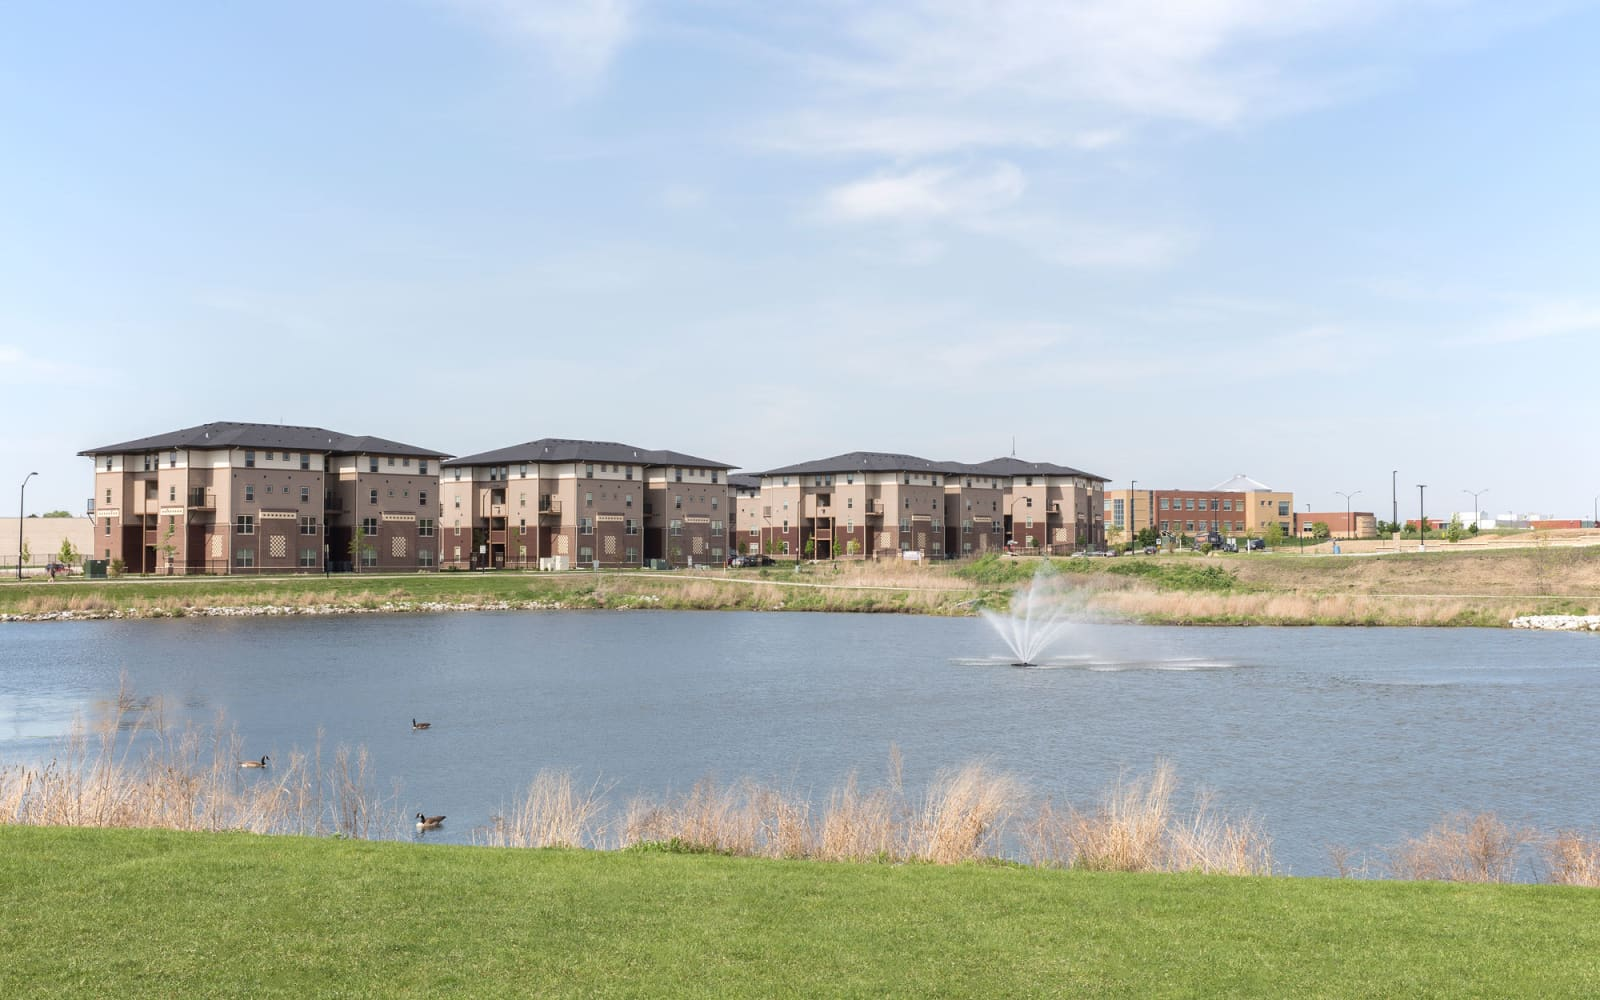 Pond outside Prairie Pointe Student Living in Ankeny, Iowa